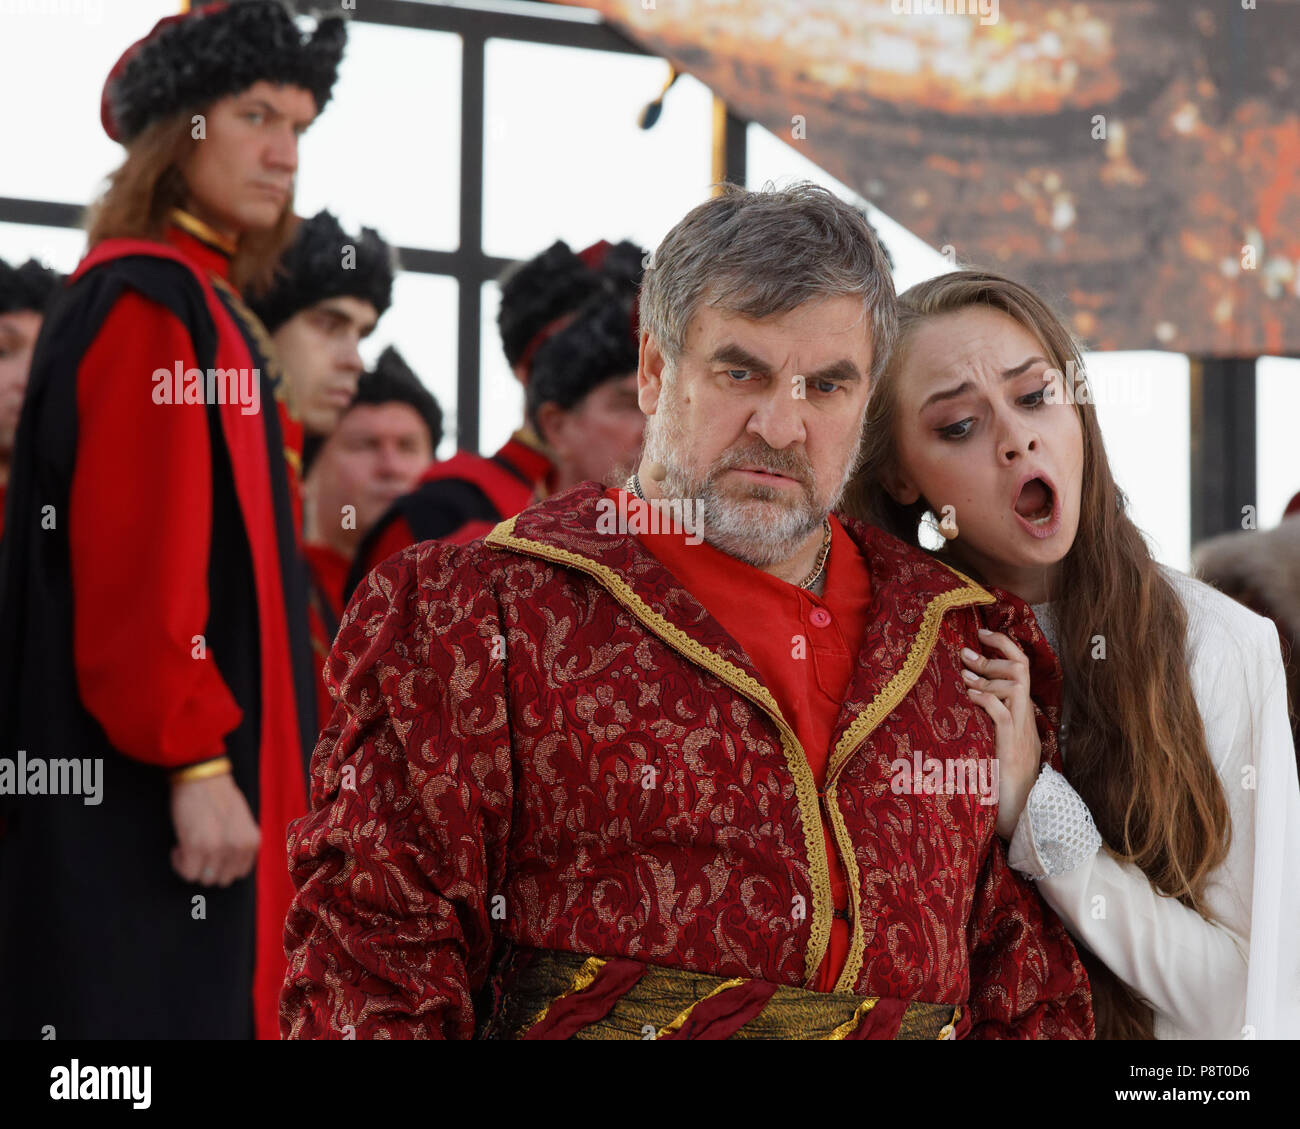 St. Petersburg, Russia - July 12, 2018: Soloist of Mariinsky theater Alexander Nikitin as Grigory Gryaznoy (center) and Olga Cheremnykh as Marfa in th - Stock Image